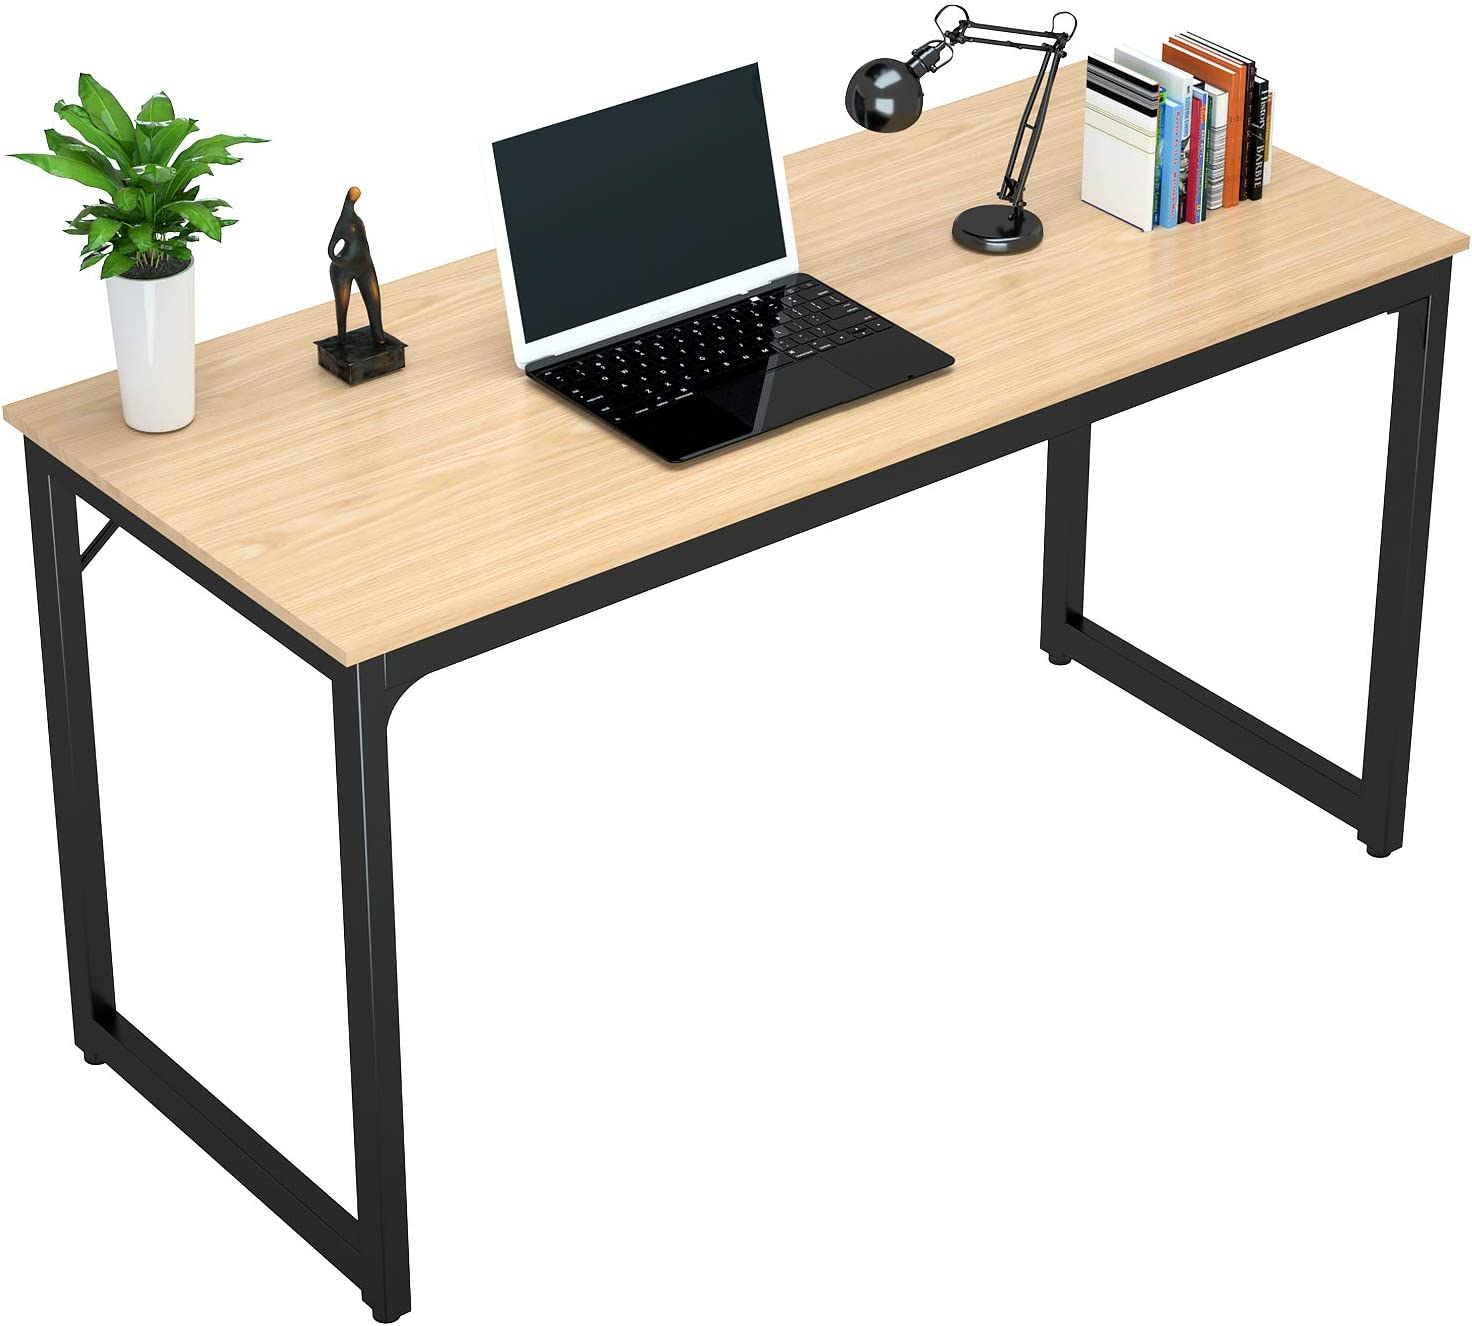 "Foxemart 47"" Computer Desk Modern Sturdy Office Desk PC Laptop Notebook Study Writing Table for Home Office Workstation, Natural"